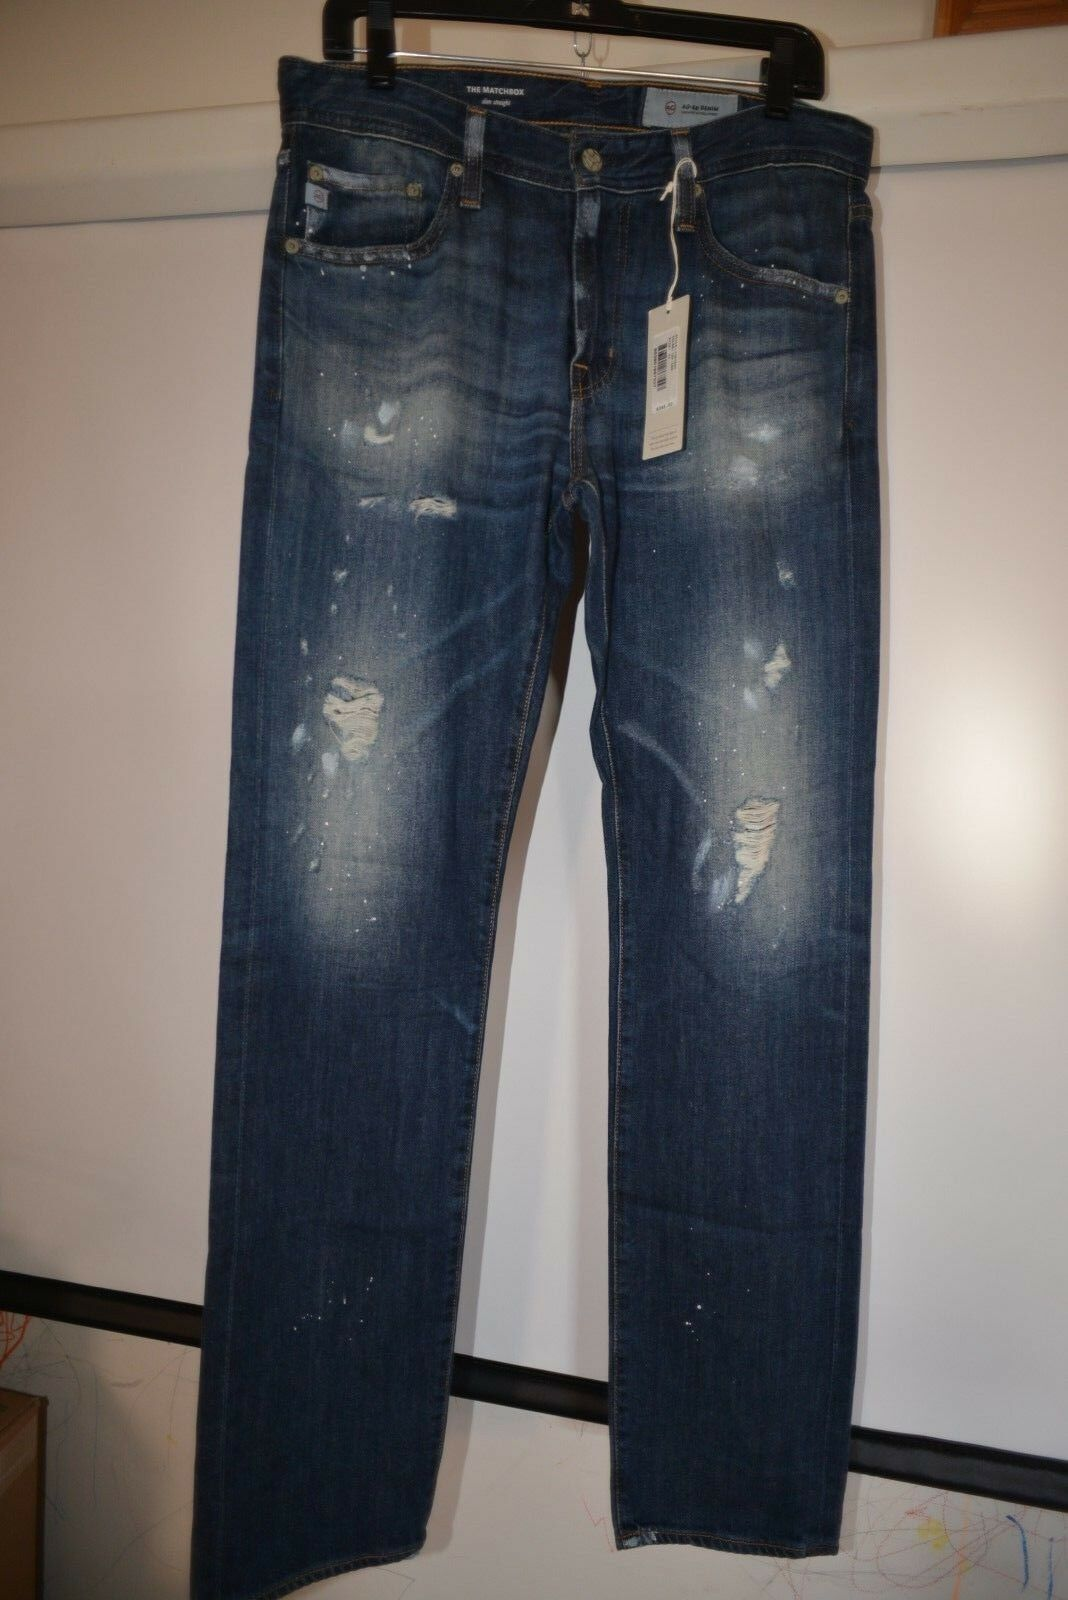 NWT Adriano goldschmied The Matchbox Slim Straight distressed Jeans 31, 32, 33